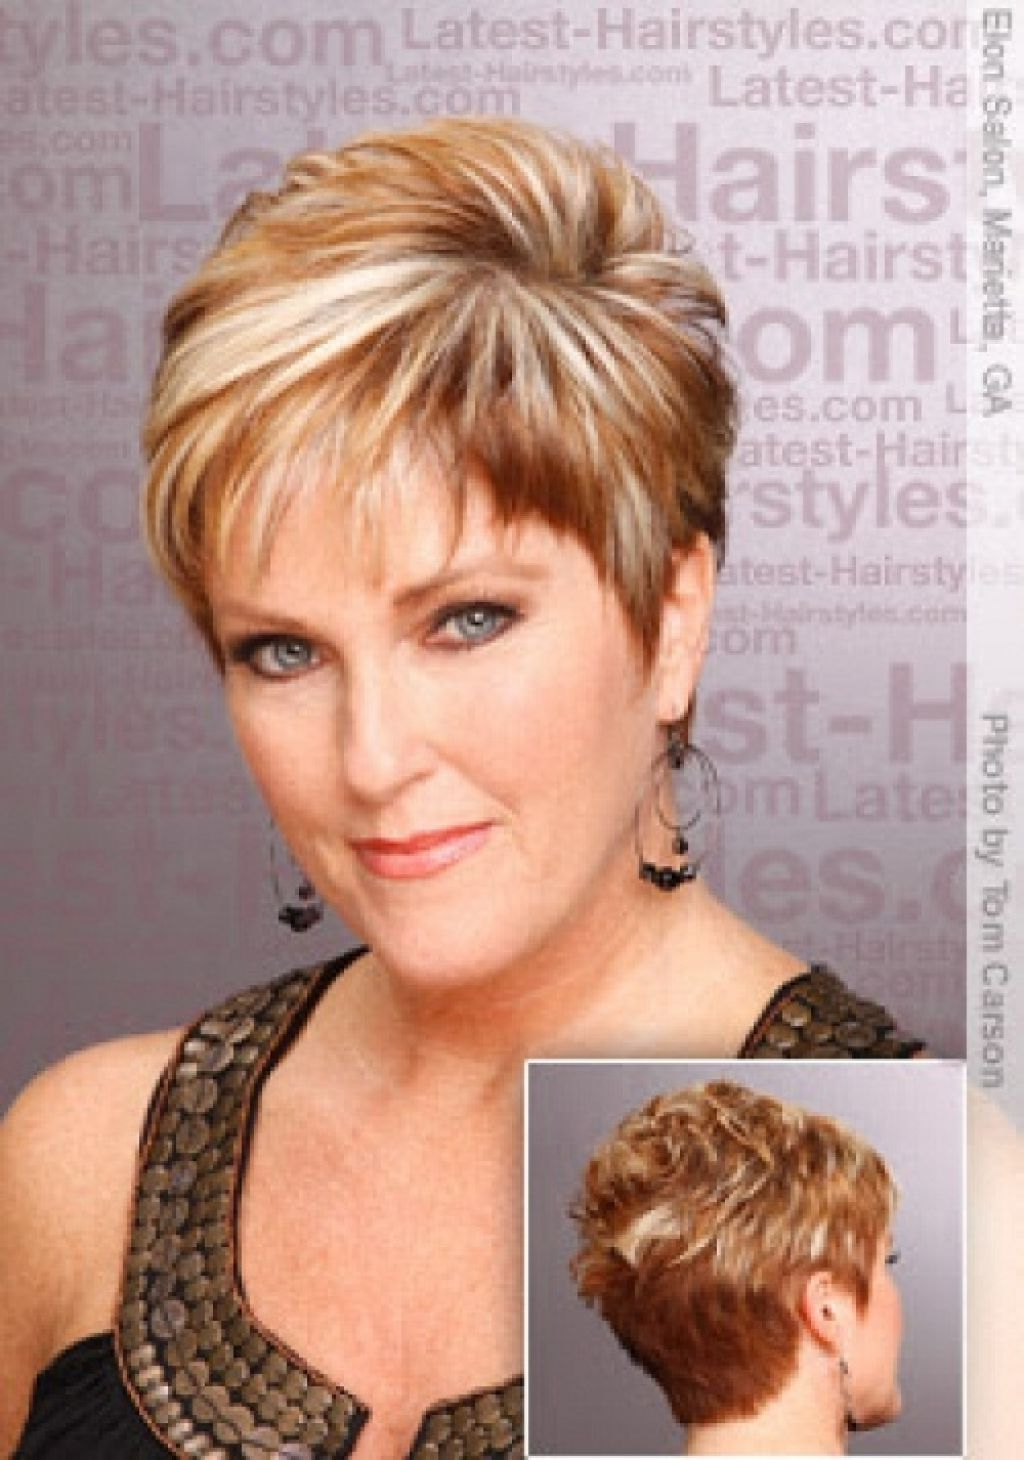 Find Out Full Gallery Of Beautiful Haircuts For Fat Women Over 40 For Short Hairstyles For Thick Hair Over (View 5 of 25)